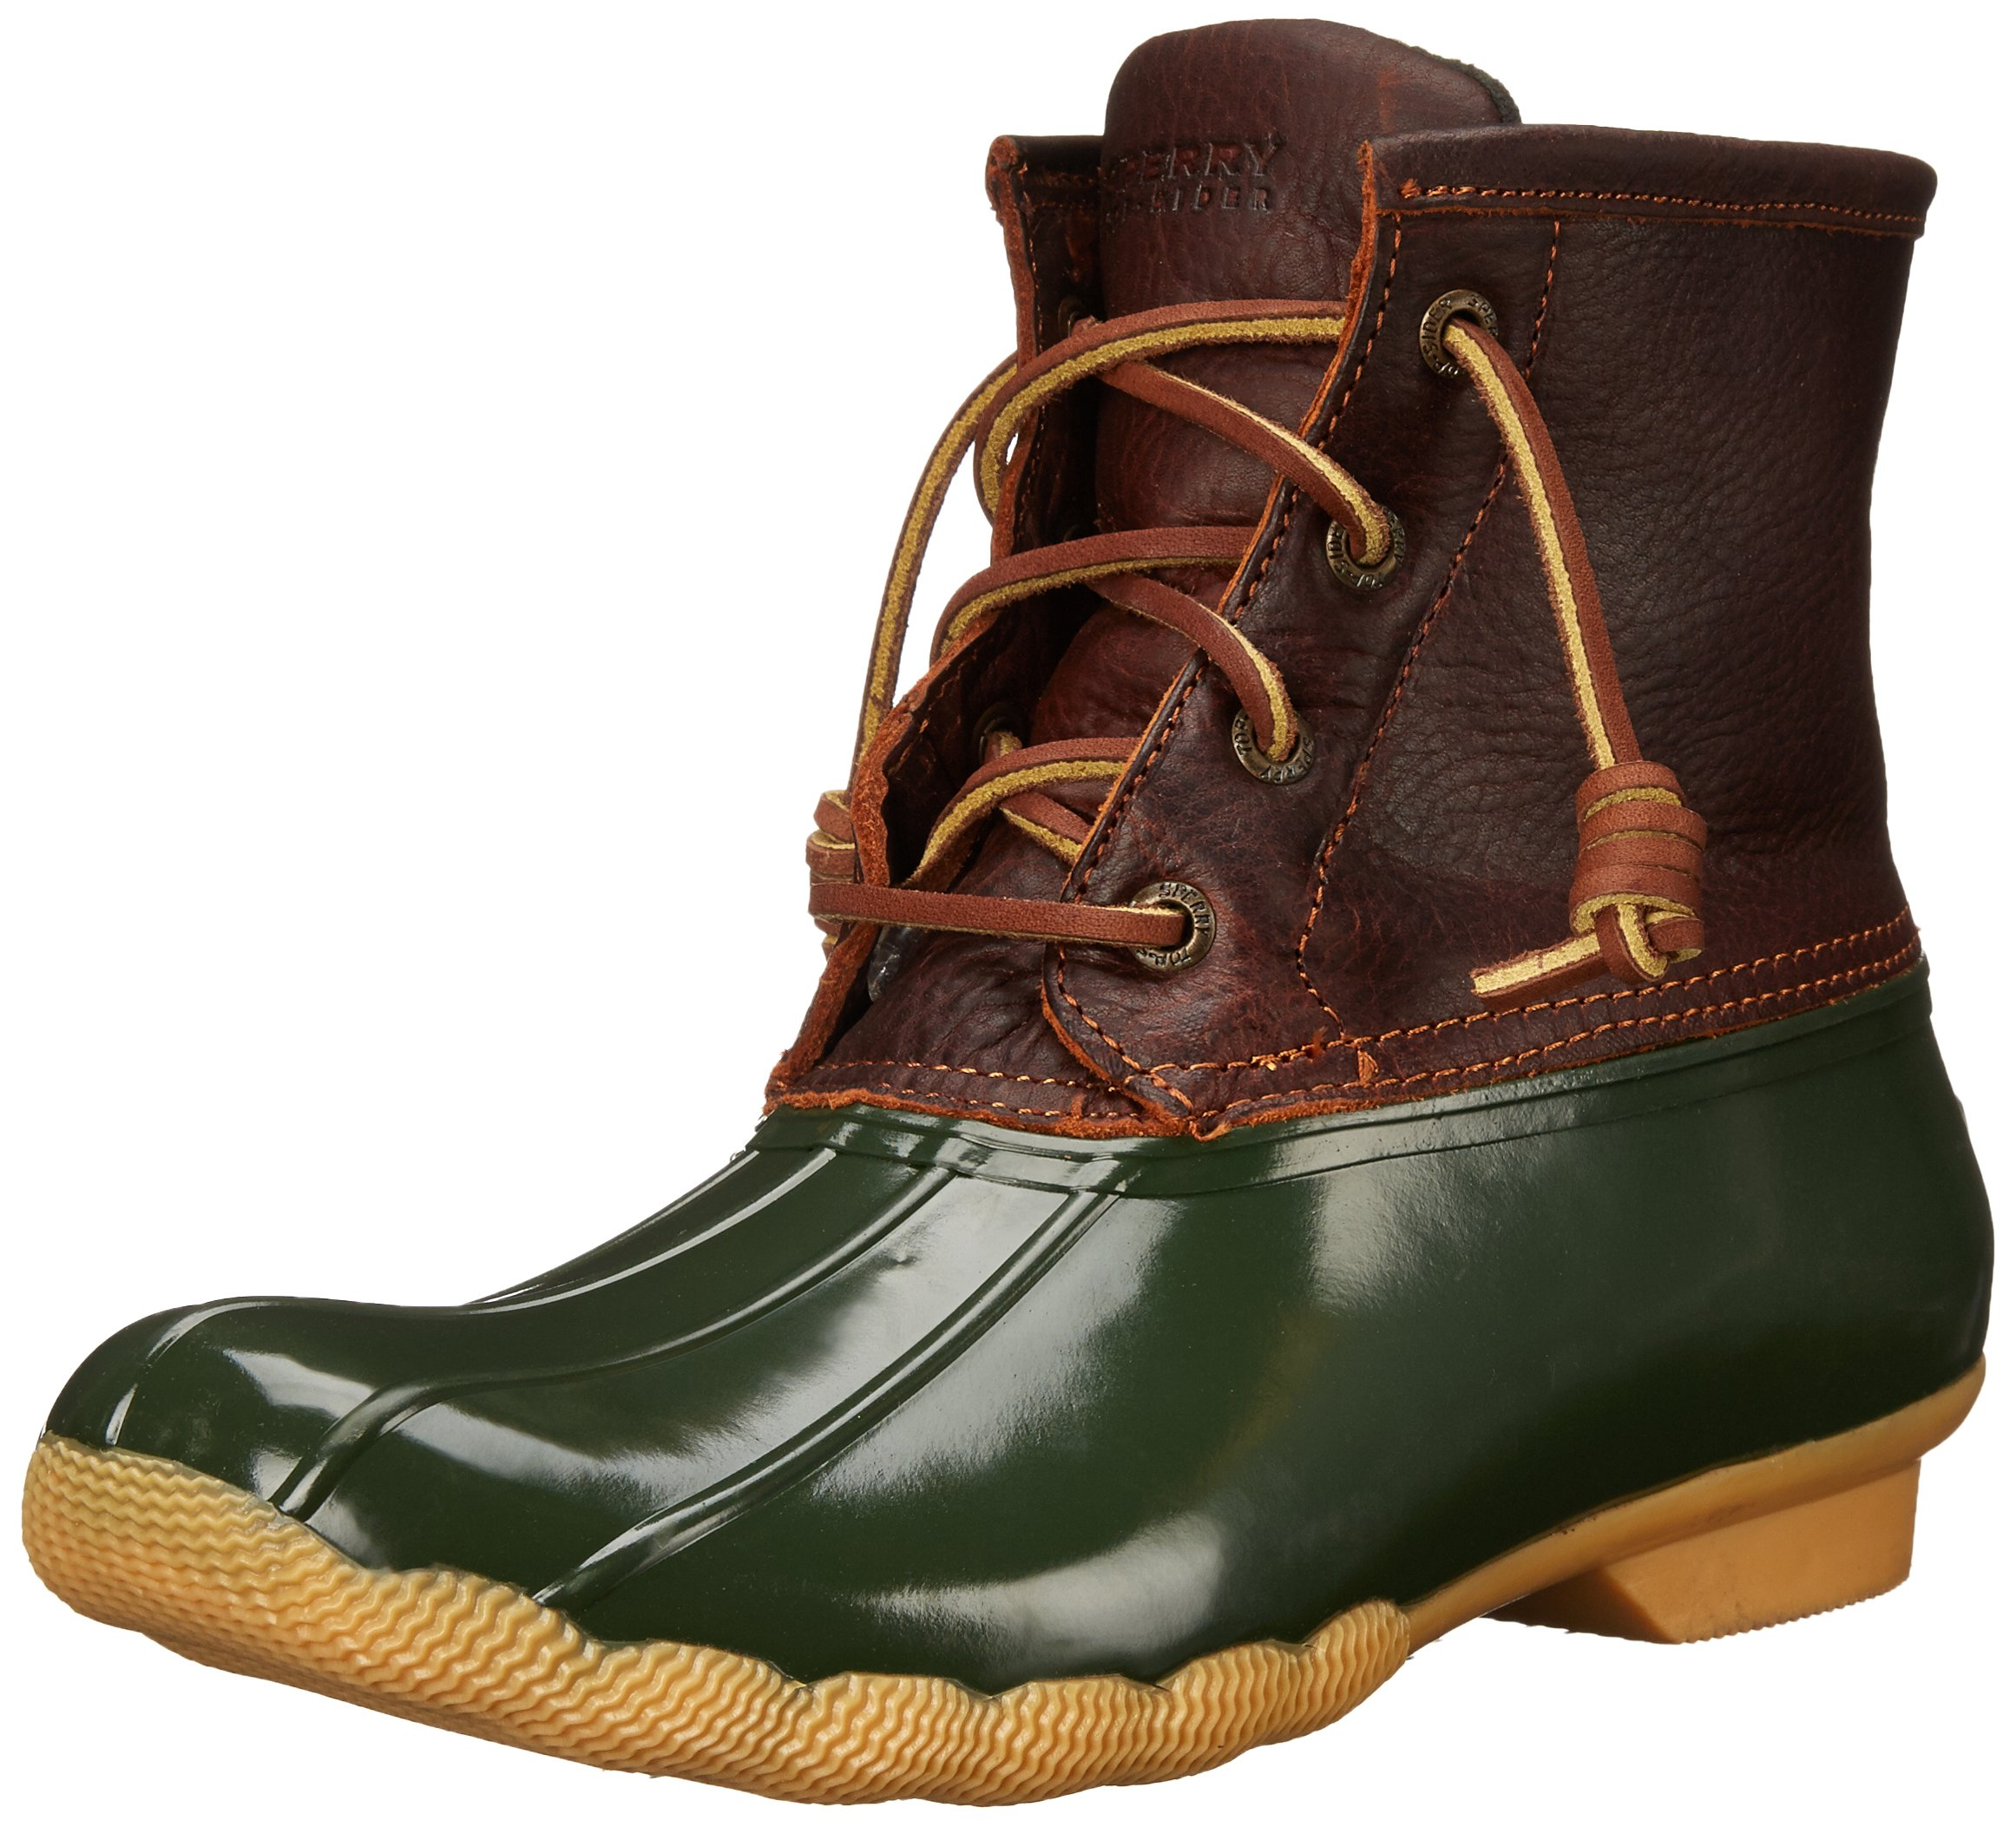 Sperry Top-Sider Women's Saltwater Boot, Tan/Green, 9.5 M US by Sperry Top-Sider